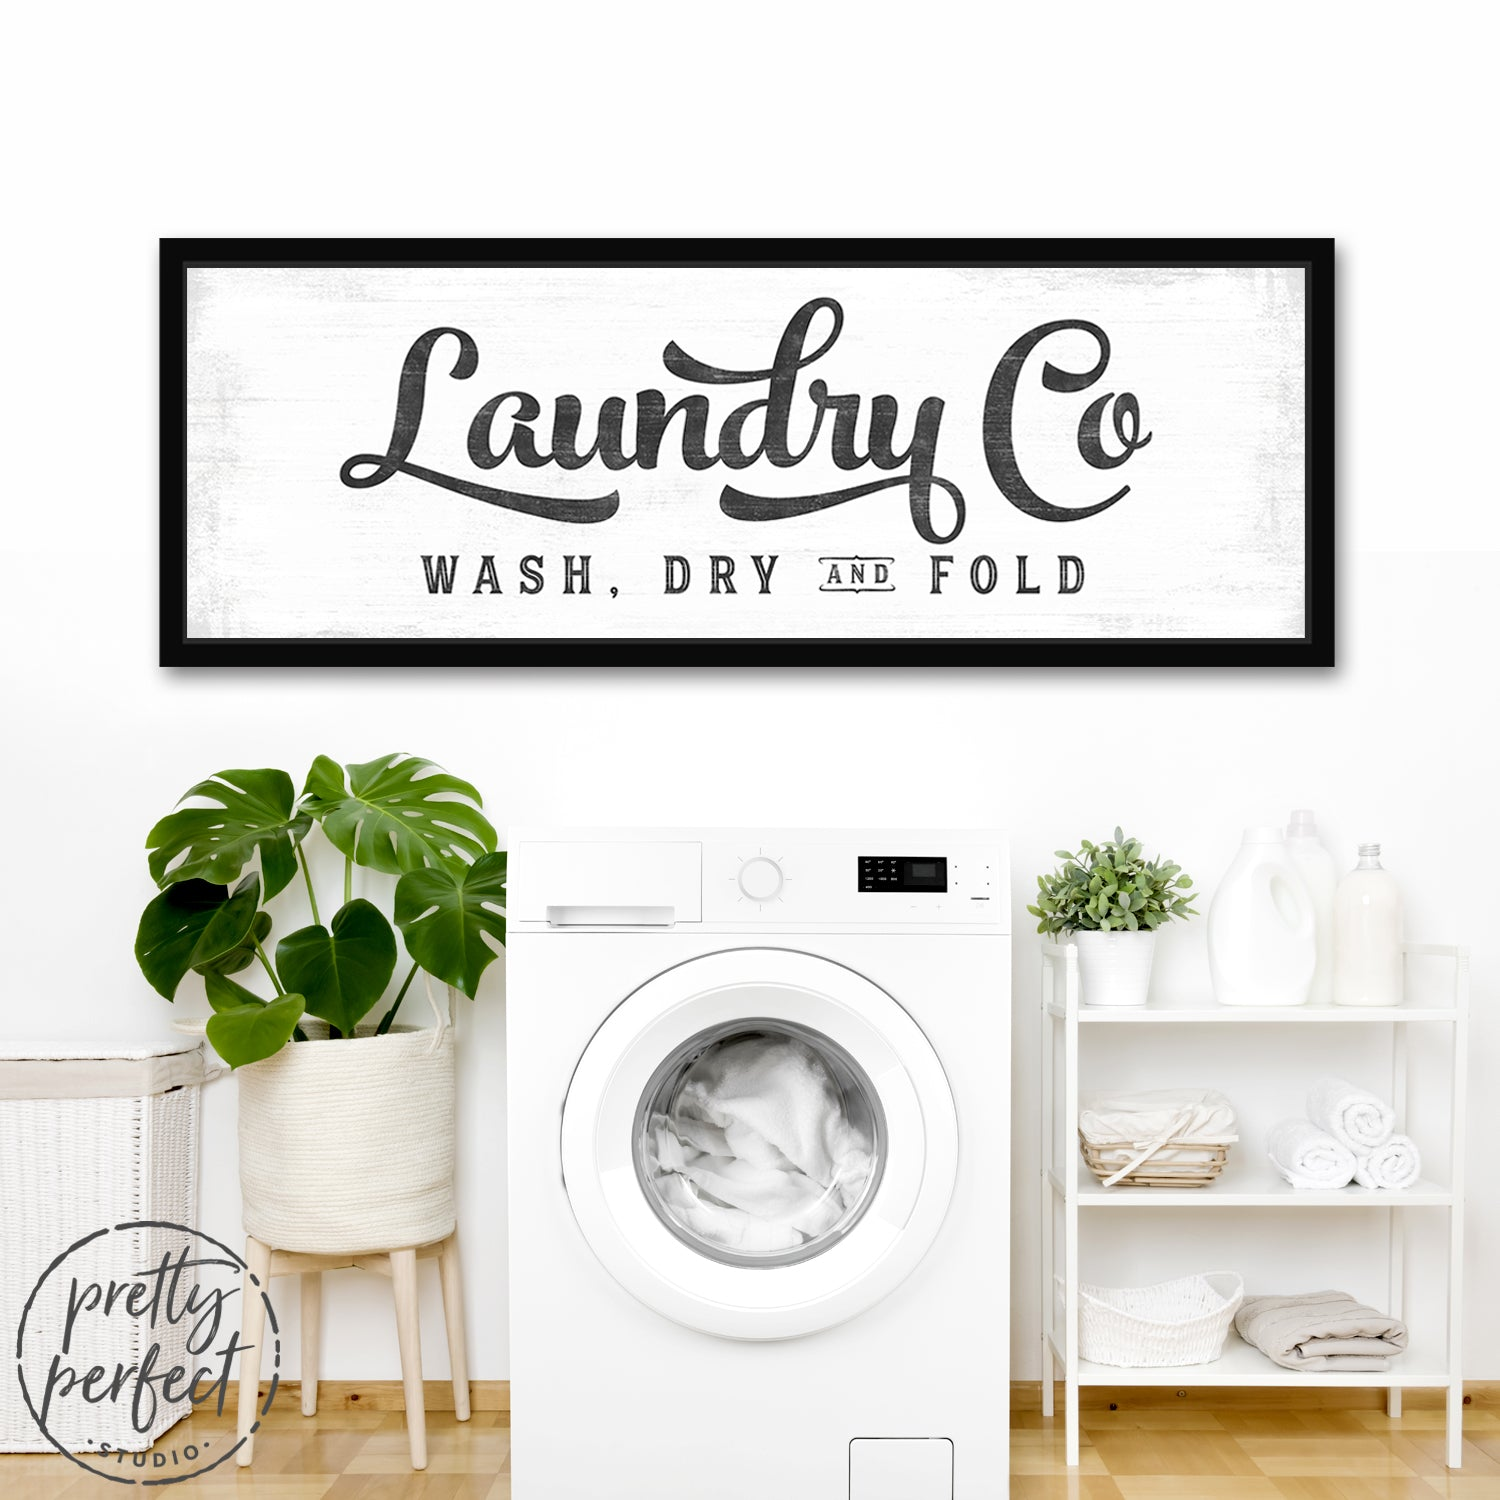 Laundry Co. Sign Wash, Dry, and Fold Sign In Laundry Room